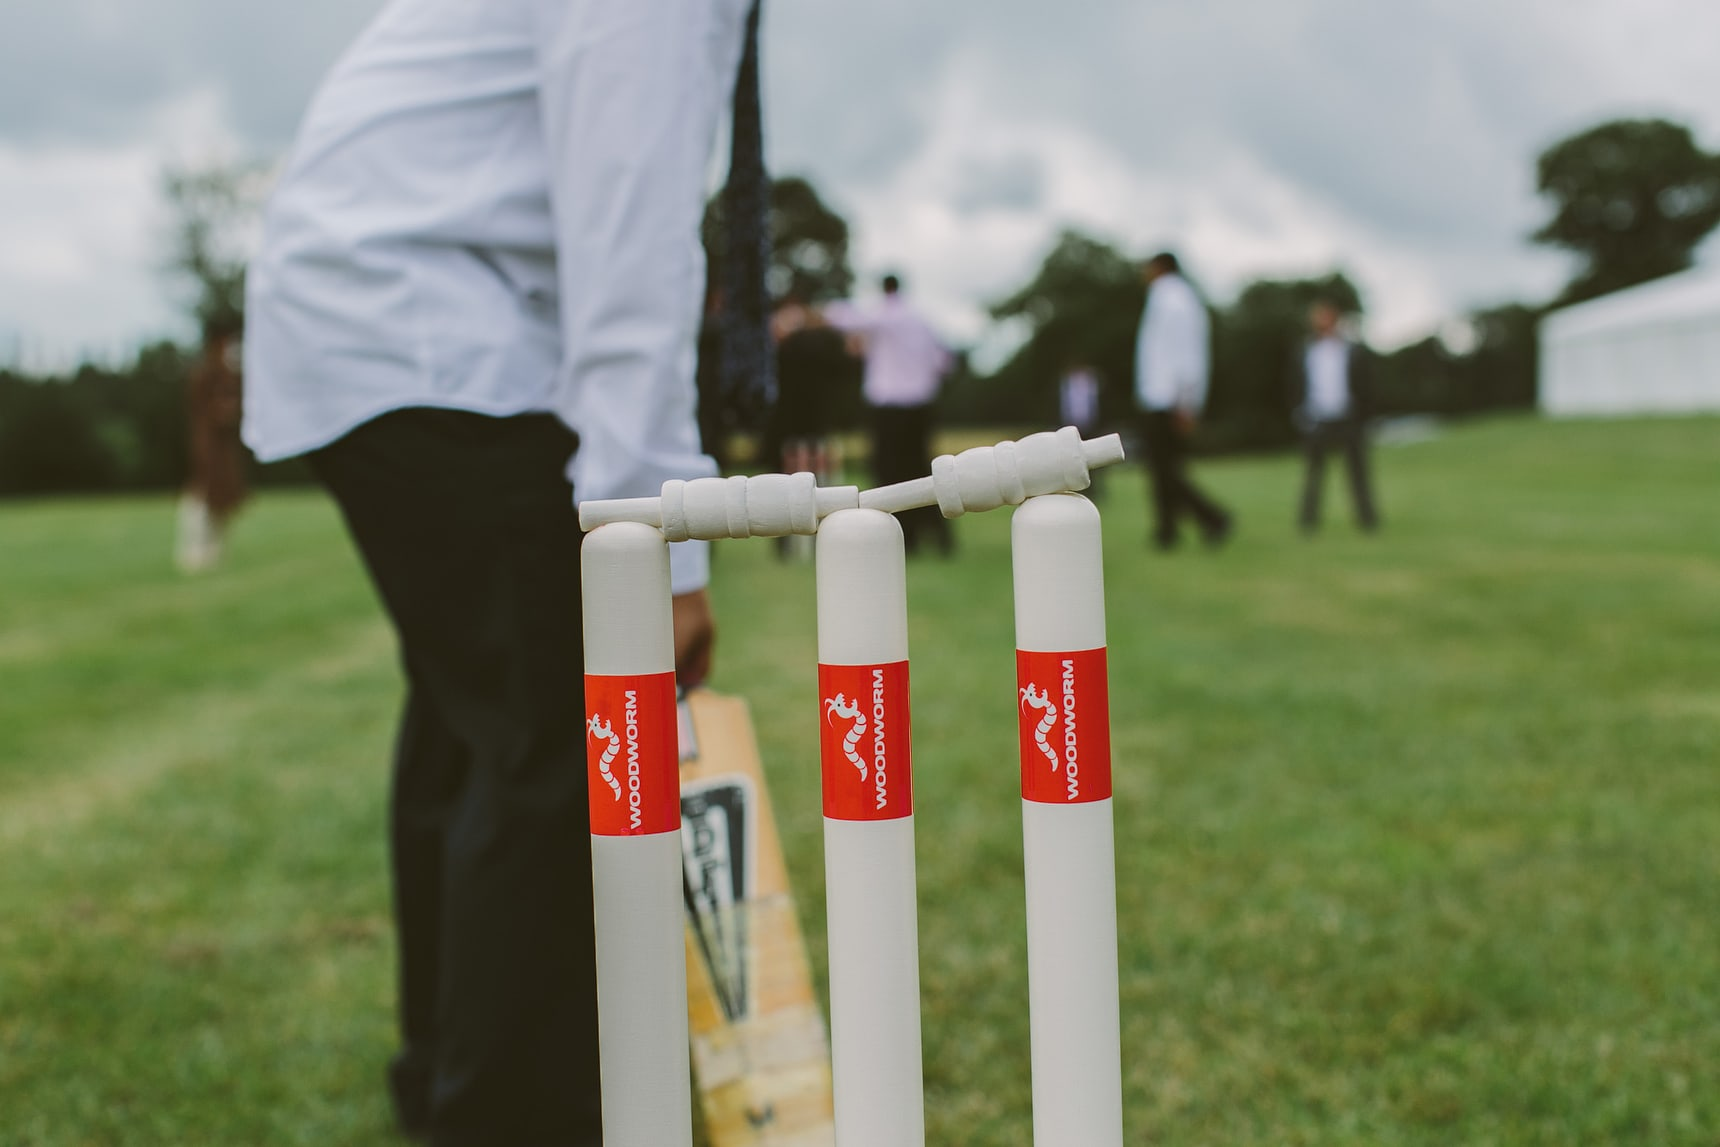 game of cricket at hindu wedding